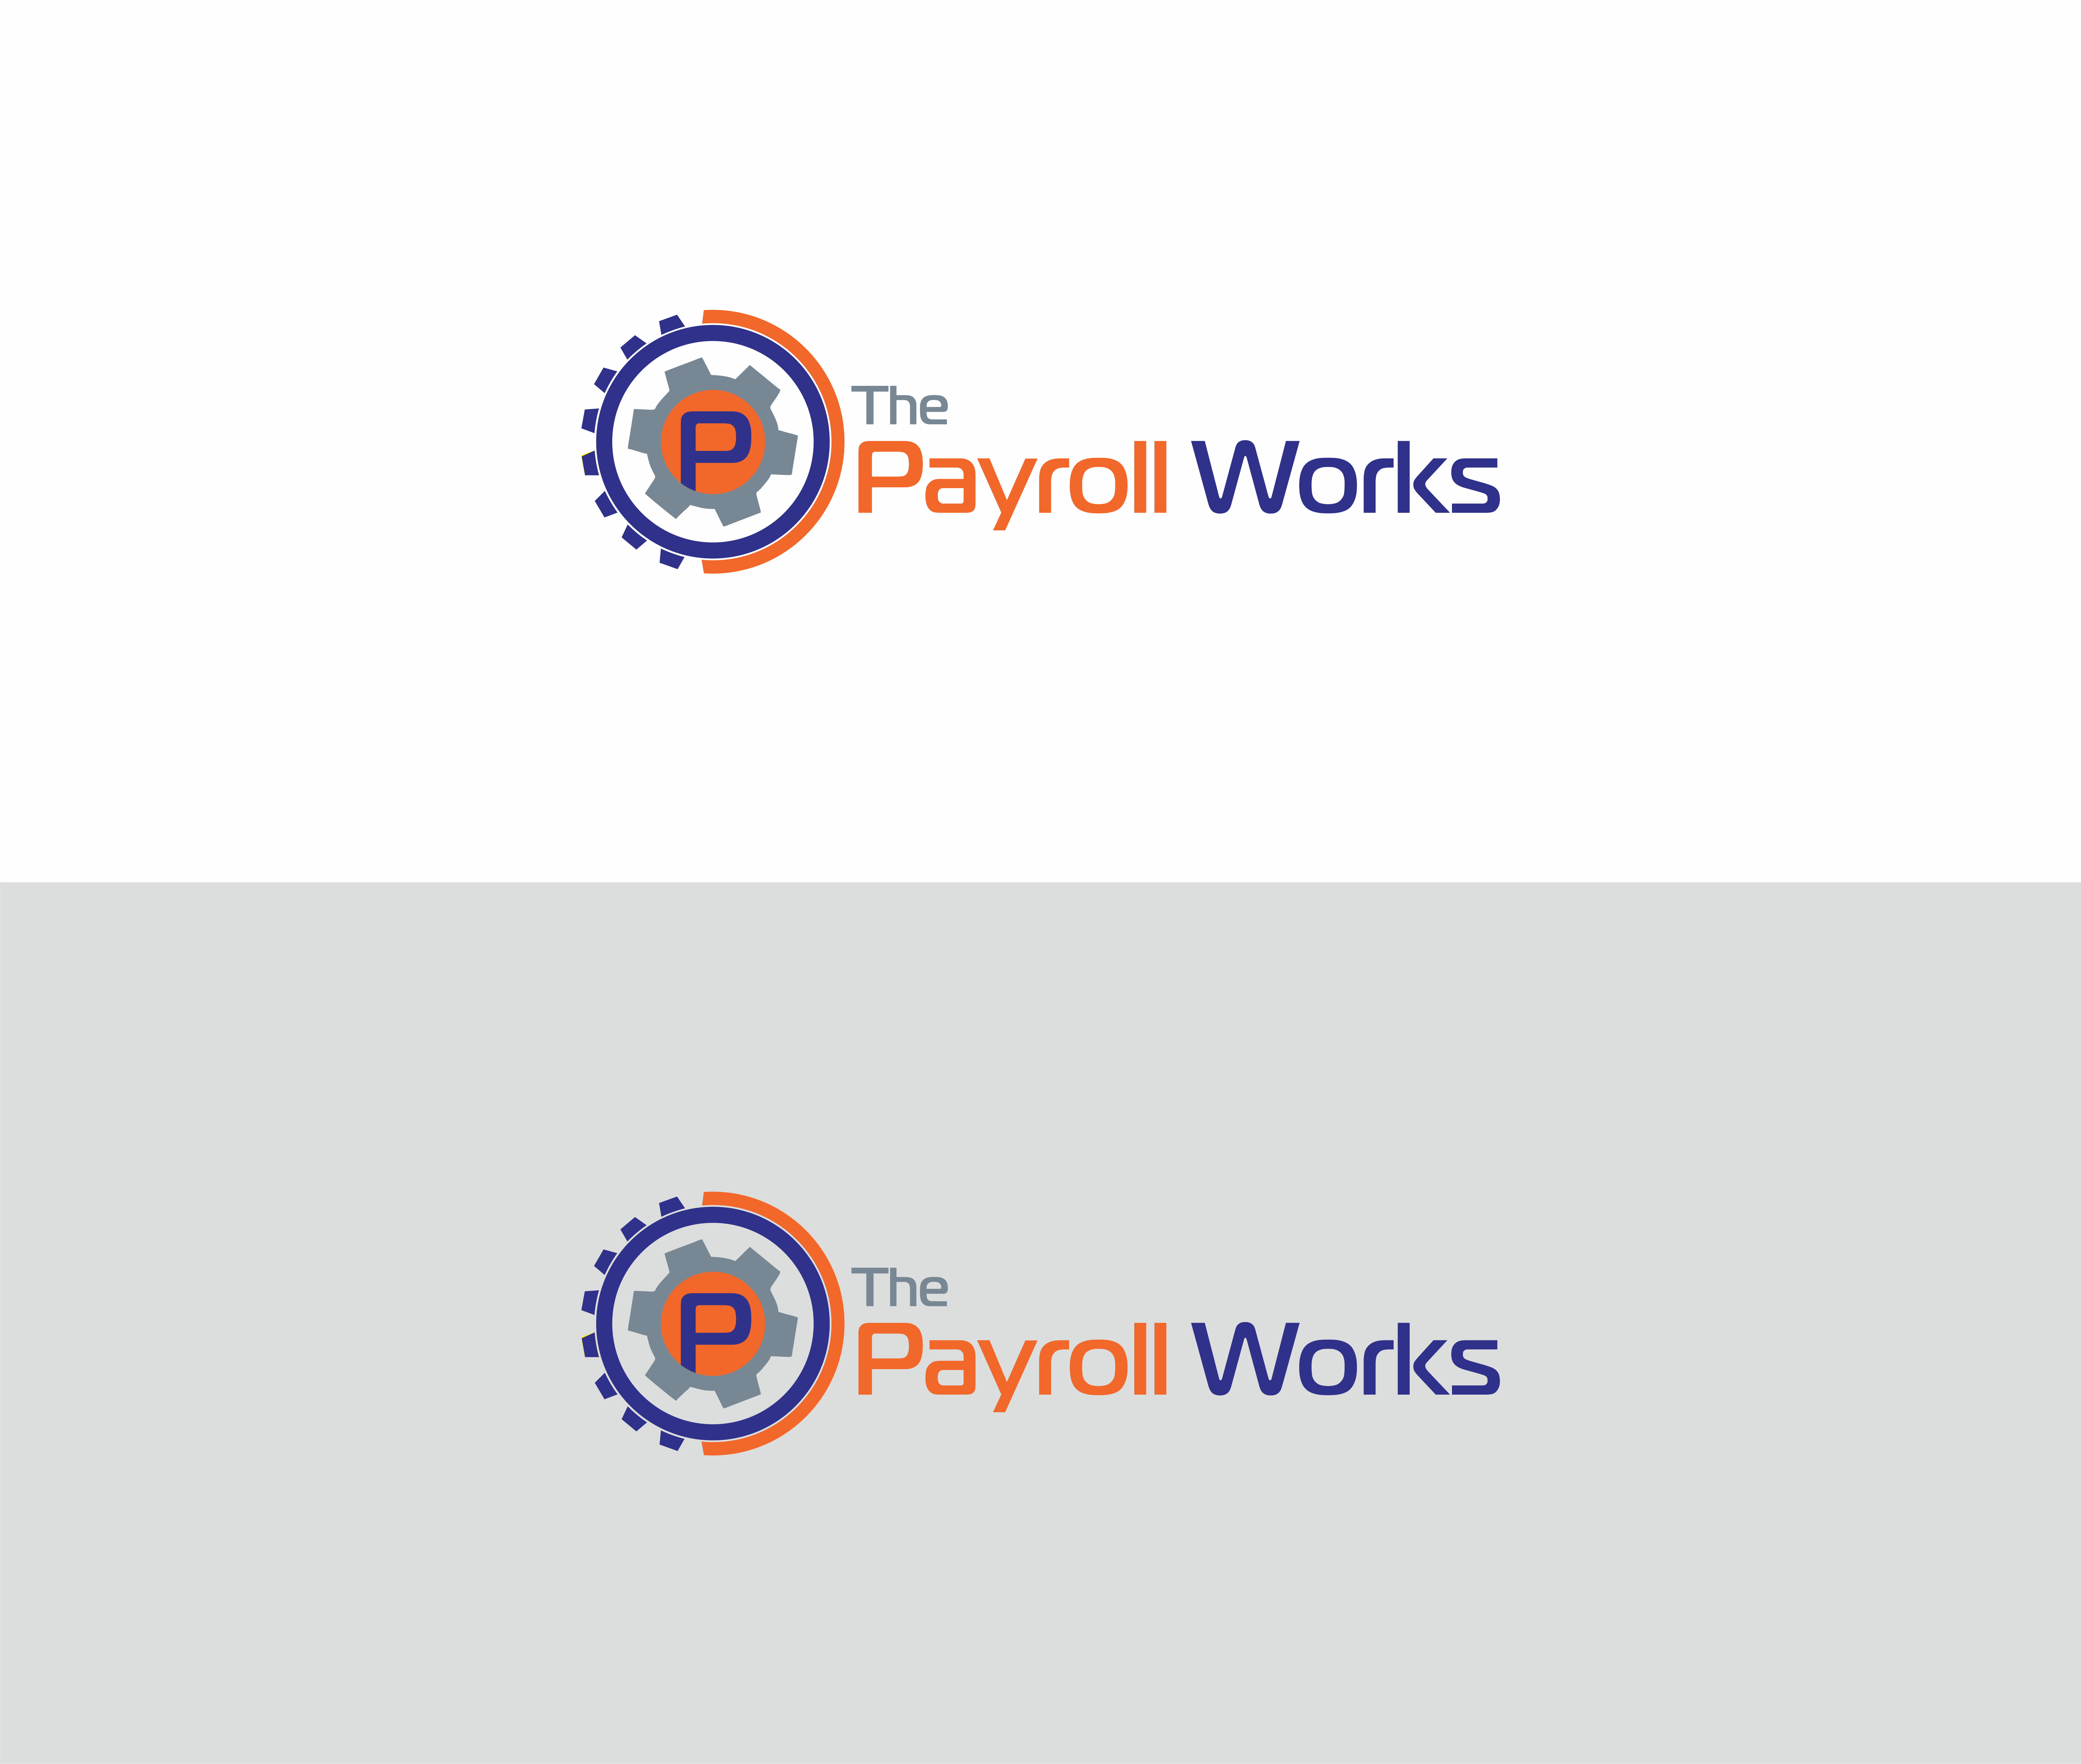 Logo Design by NOOR SYAIFUDDIN - Entry No. 34 in the Logo Design Contest Captivating Logo Design for The Payroll Works.